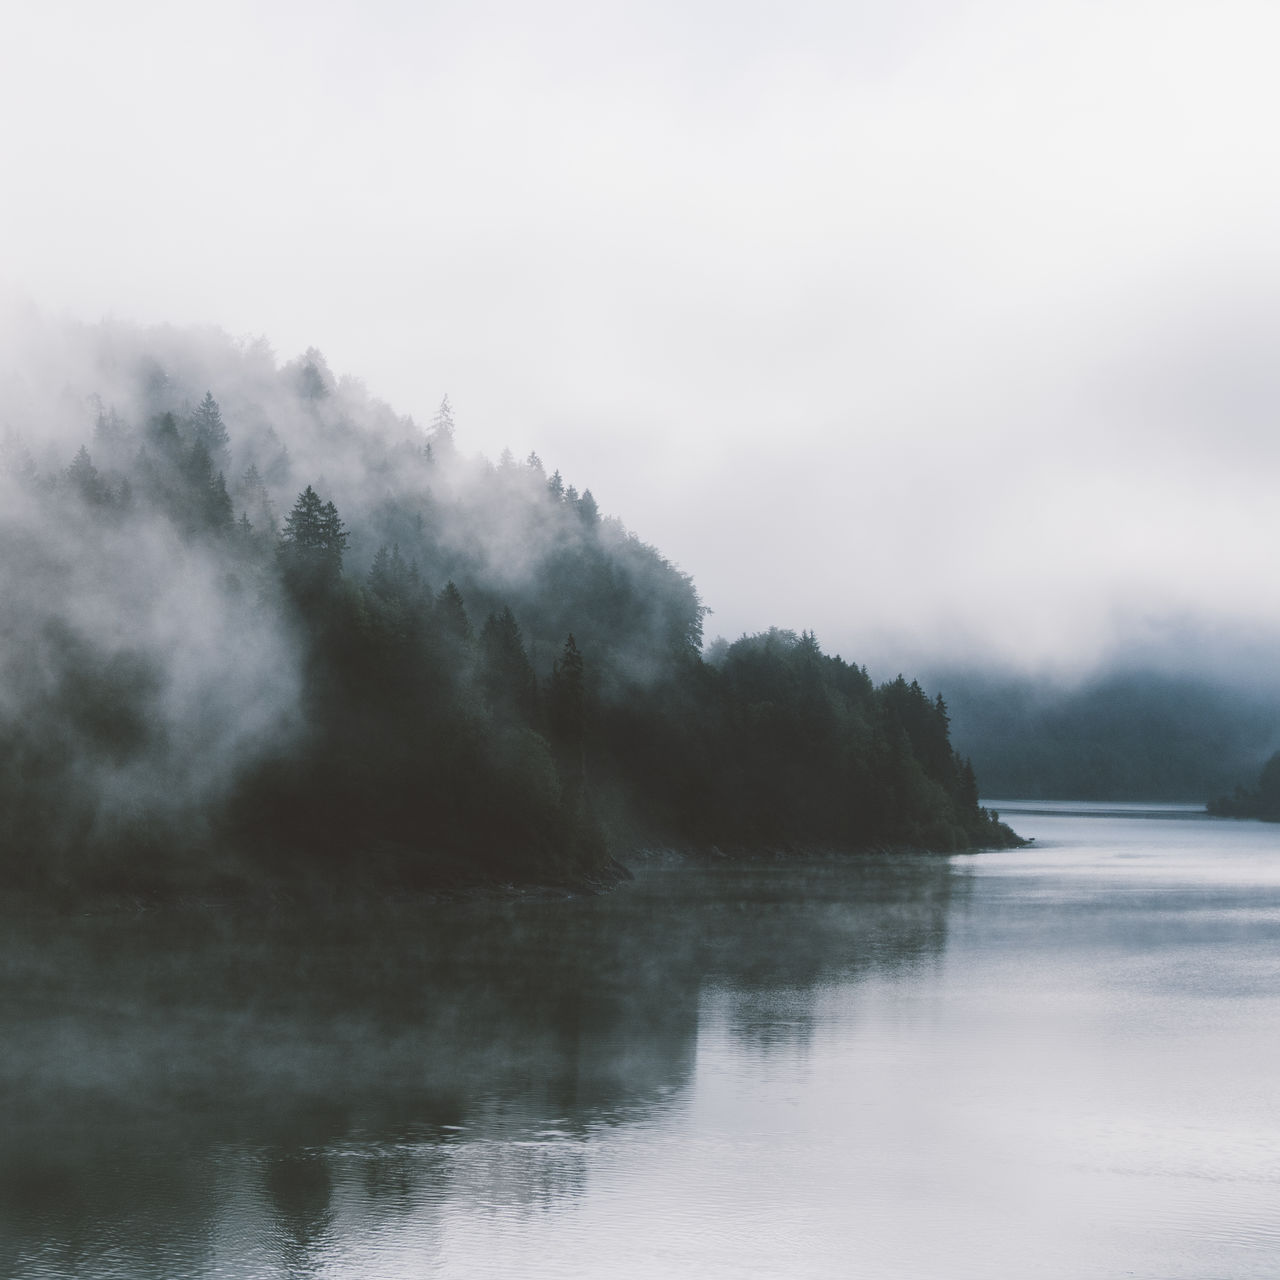 water, sky, scenics - nature, beauty in nature, no people, tranquility, tranquil scene, smoke - physical structure, nature, waterfront, non-urban scene, day, lake, cloud - sky, tree, environment, outdoors, plant, pollution, power in nature, air pollution